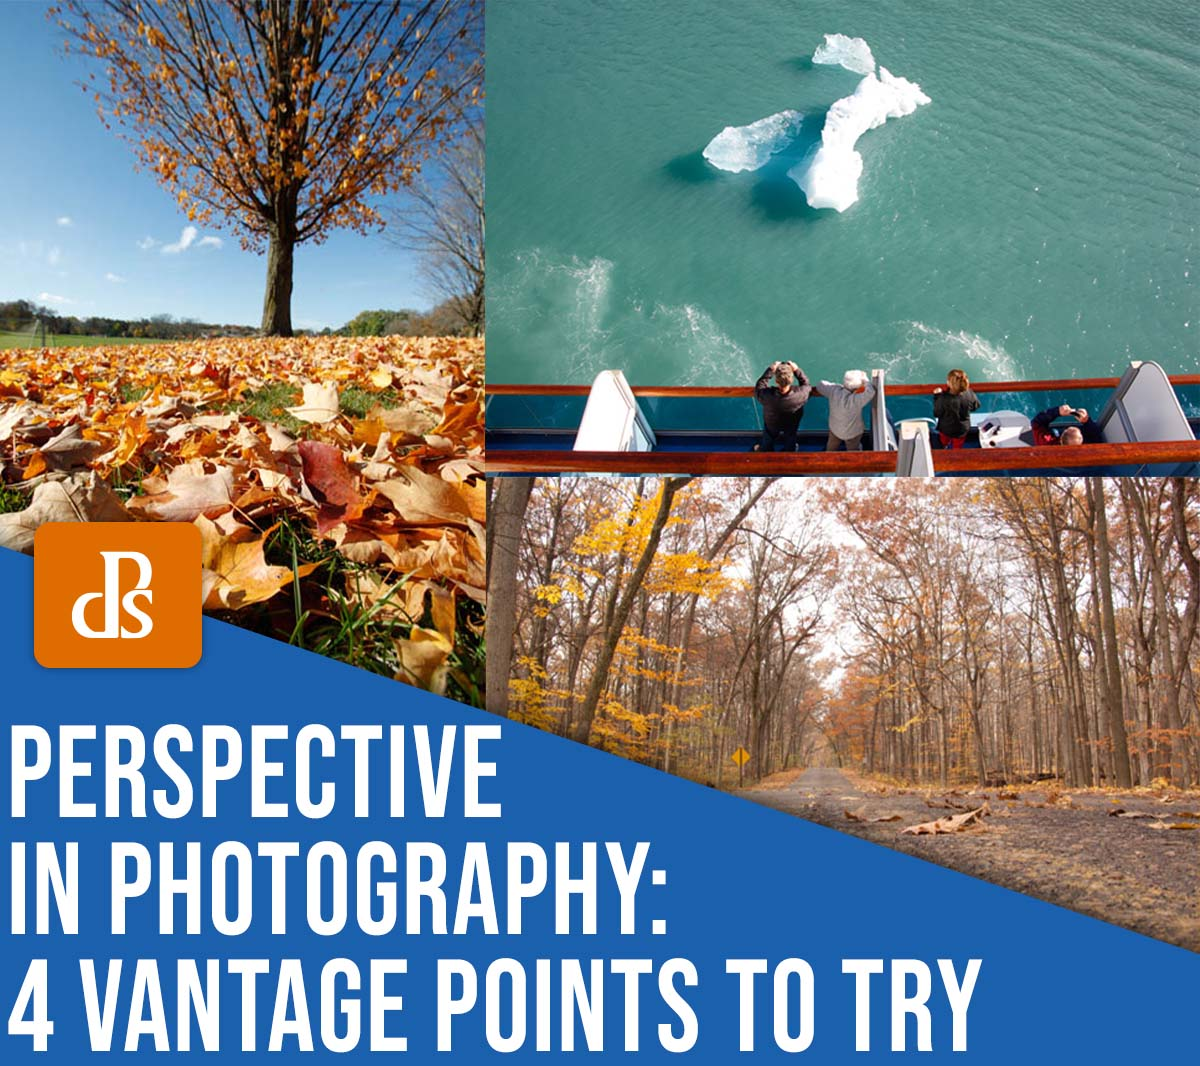 perspective in photography: 4 different vantage points to try